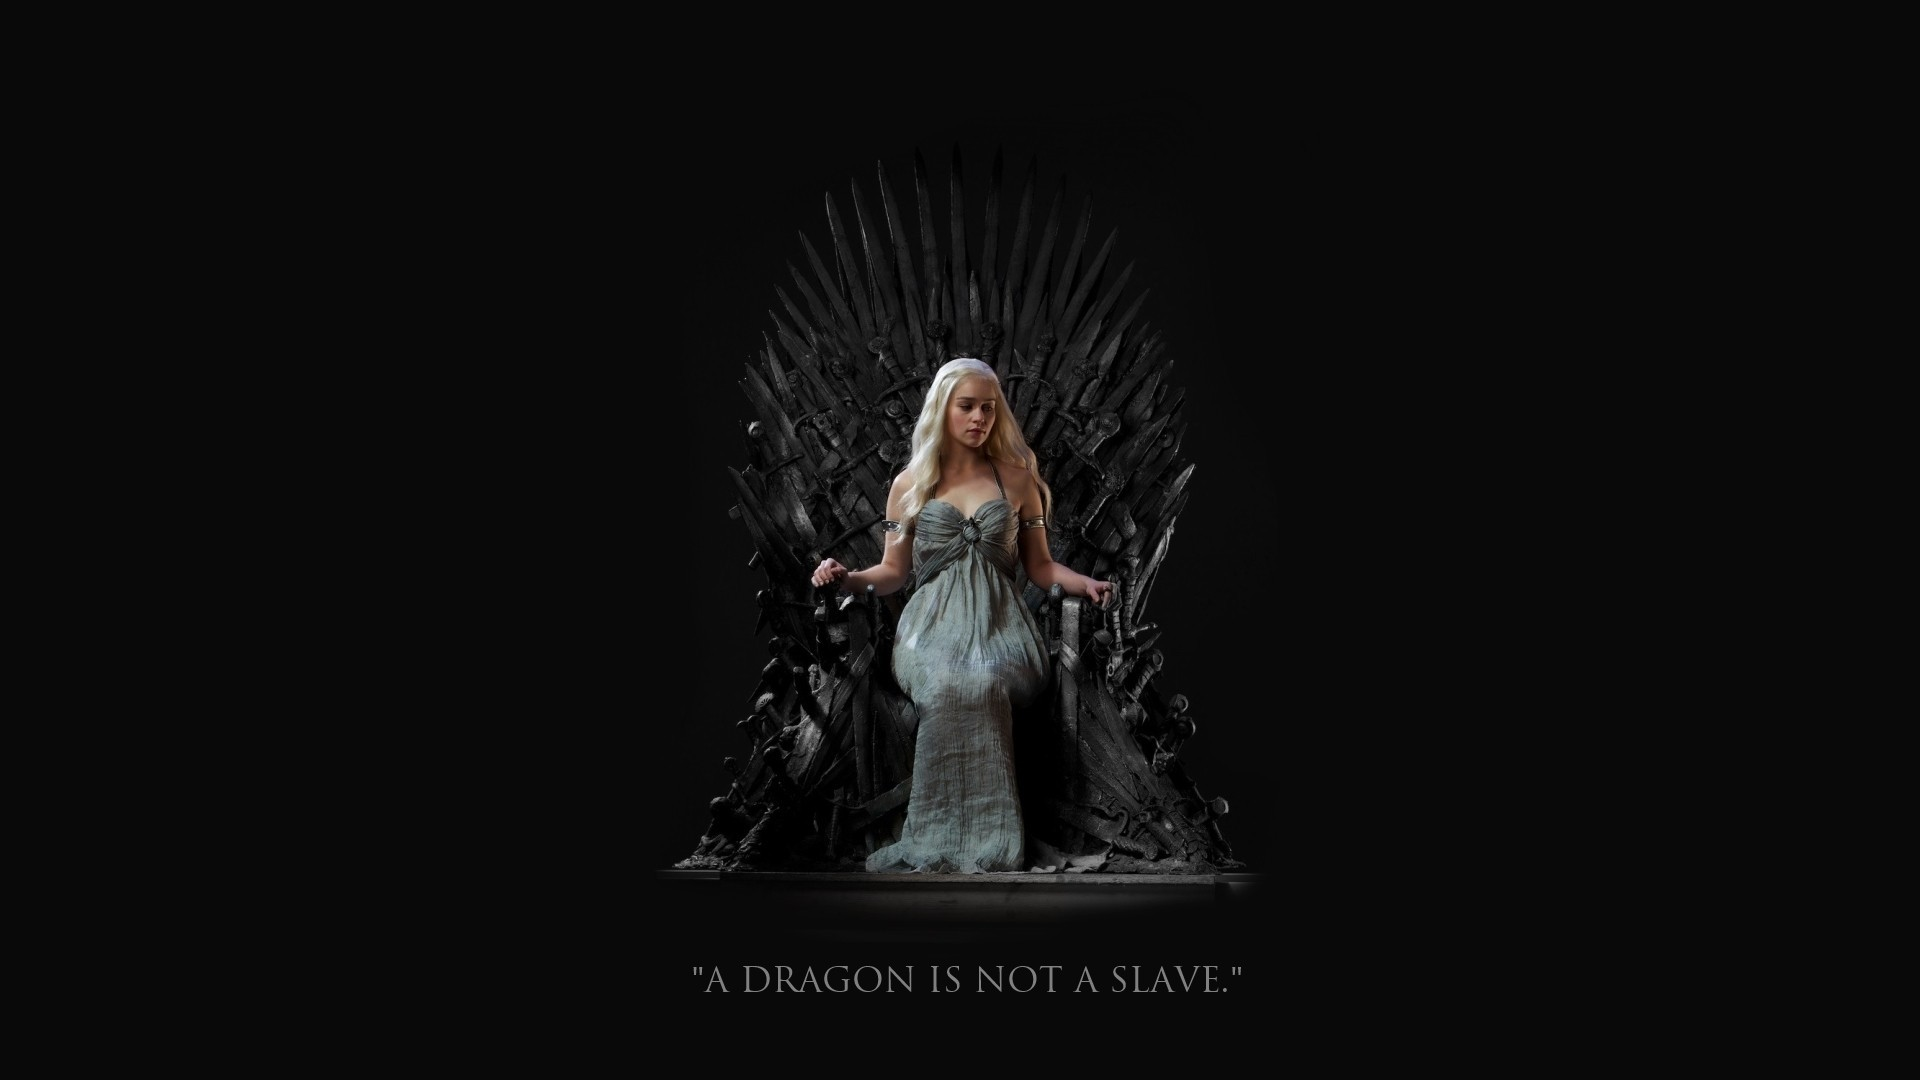 Game Of Thrones Wallpaper 1920x1080 Download Free Cool Hd